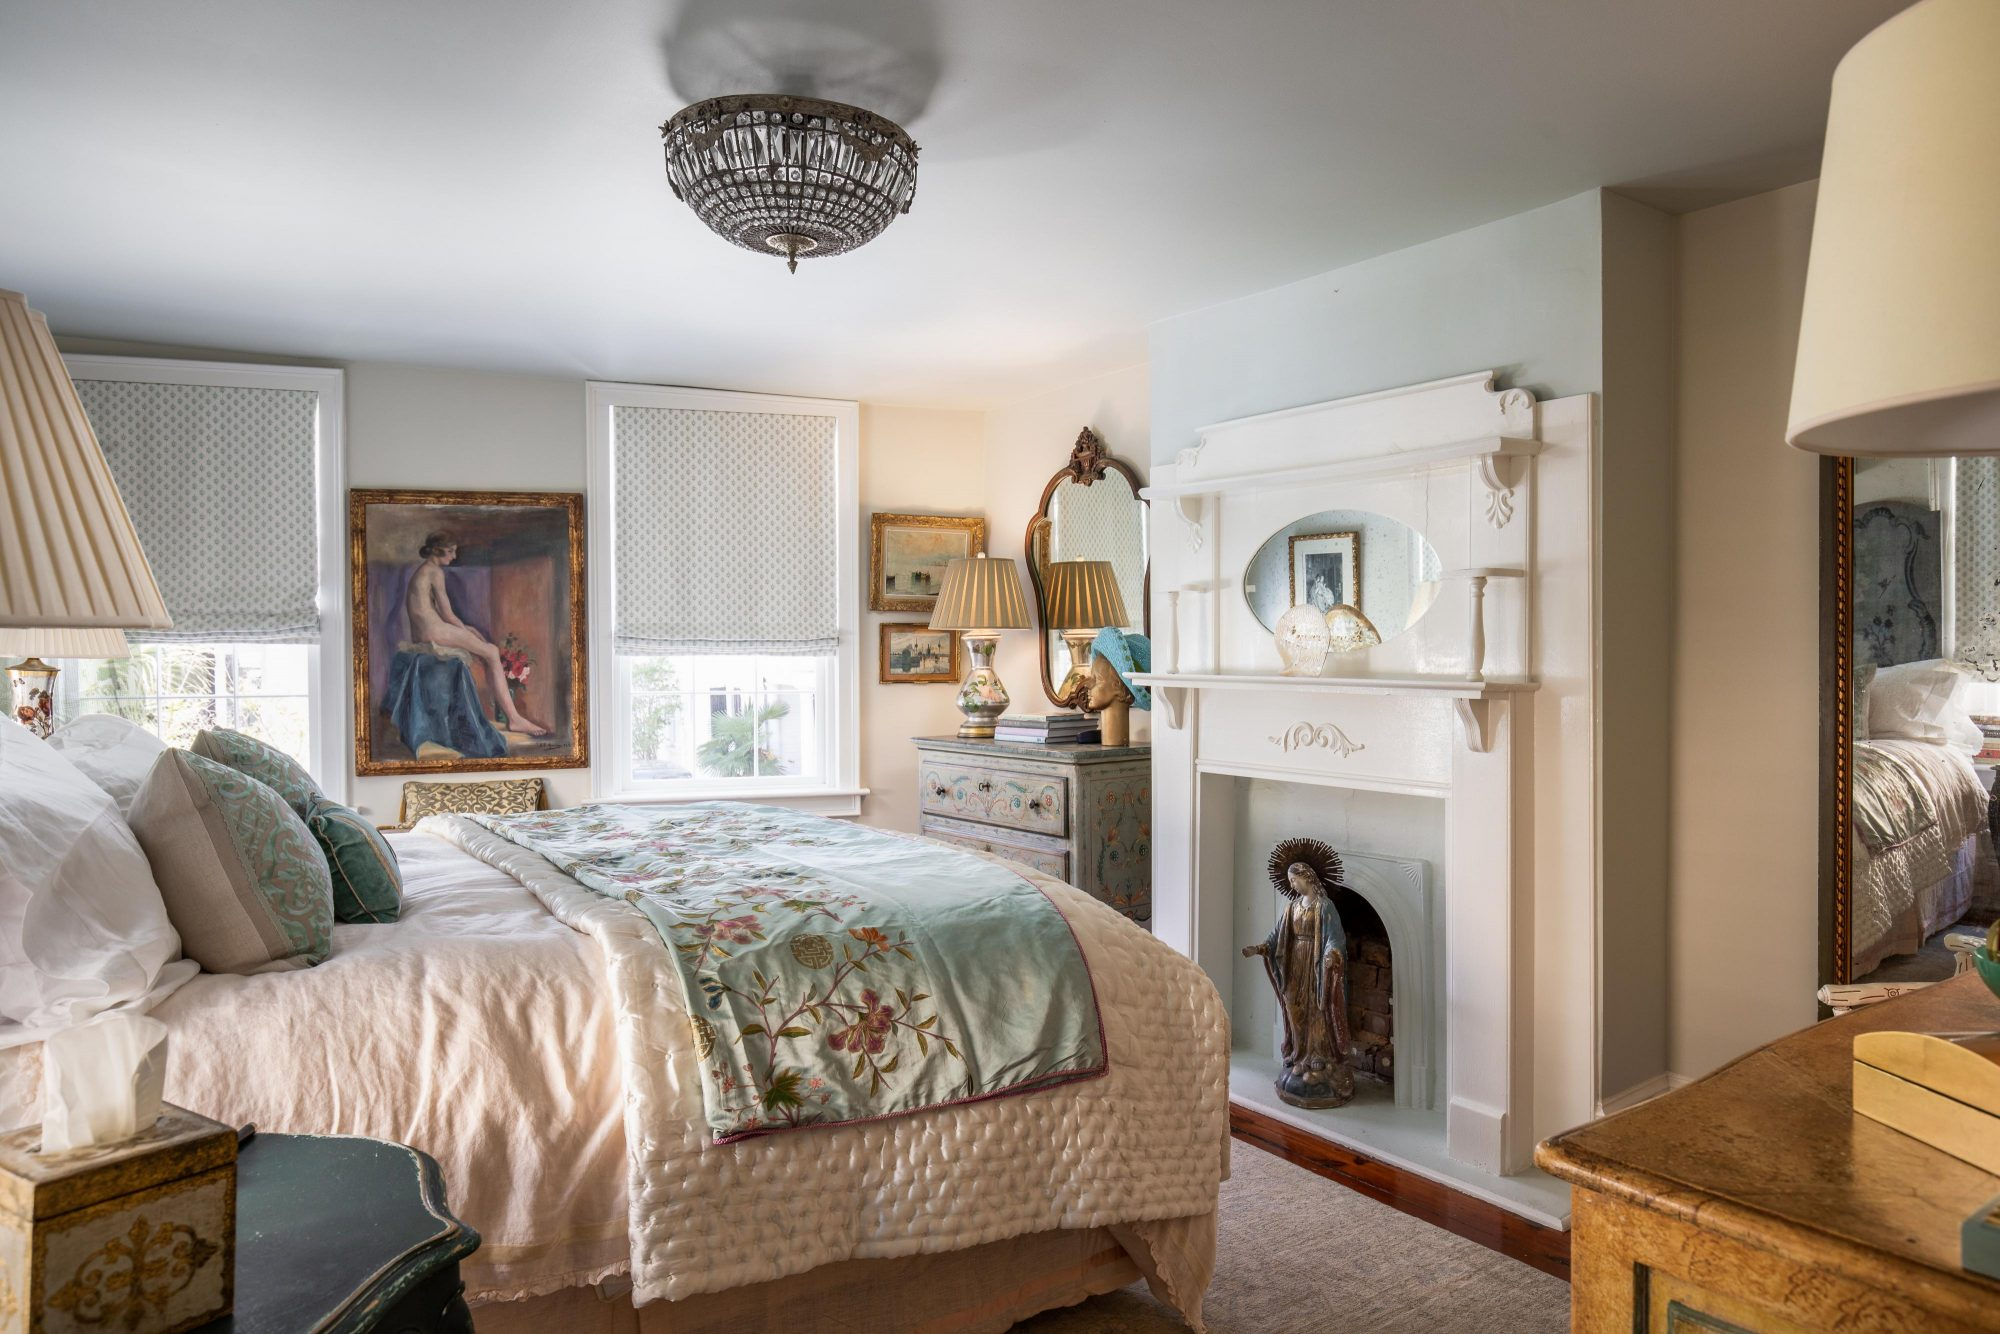 17 Water House for Sale in Charleston